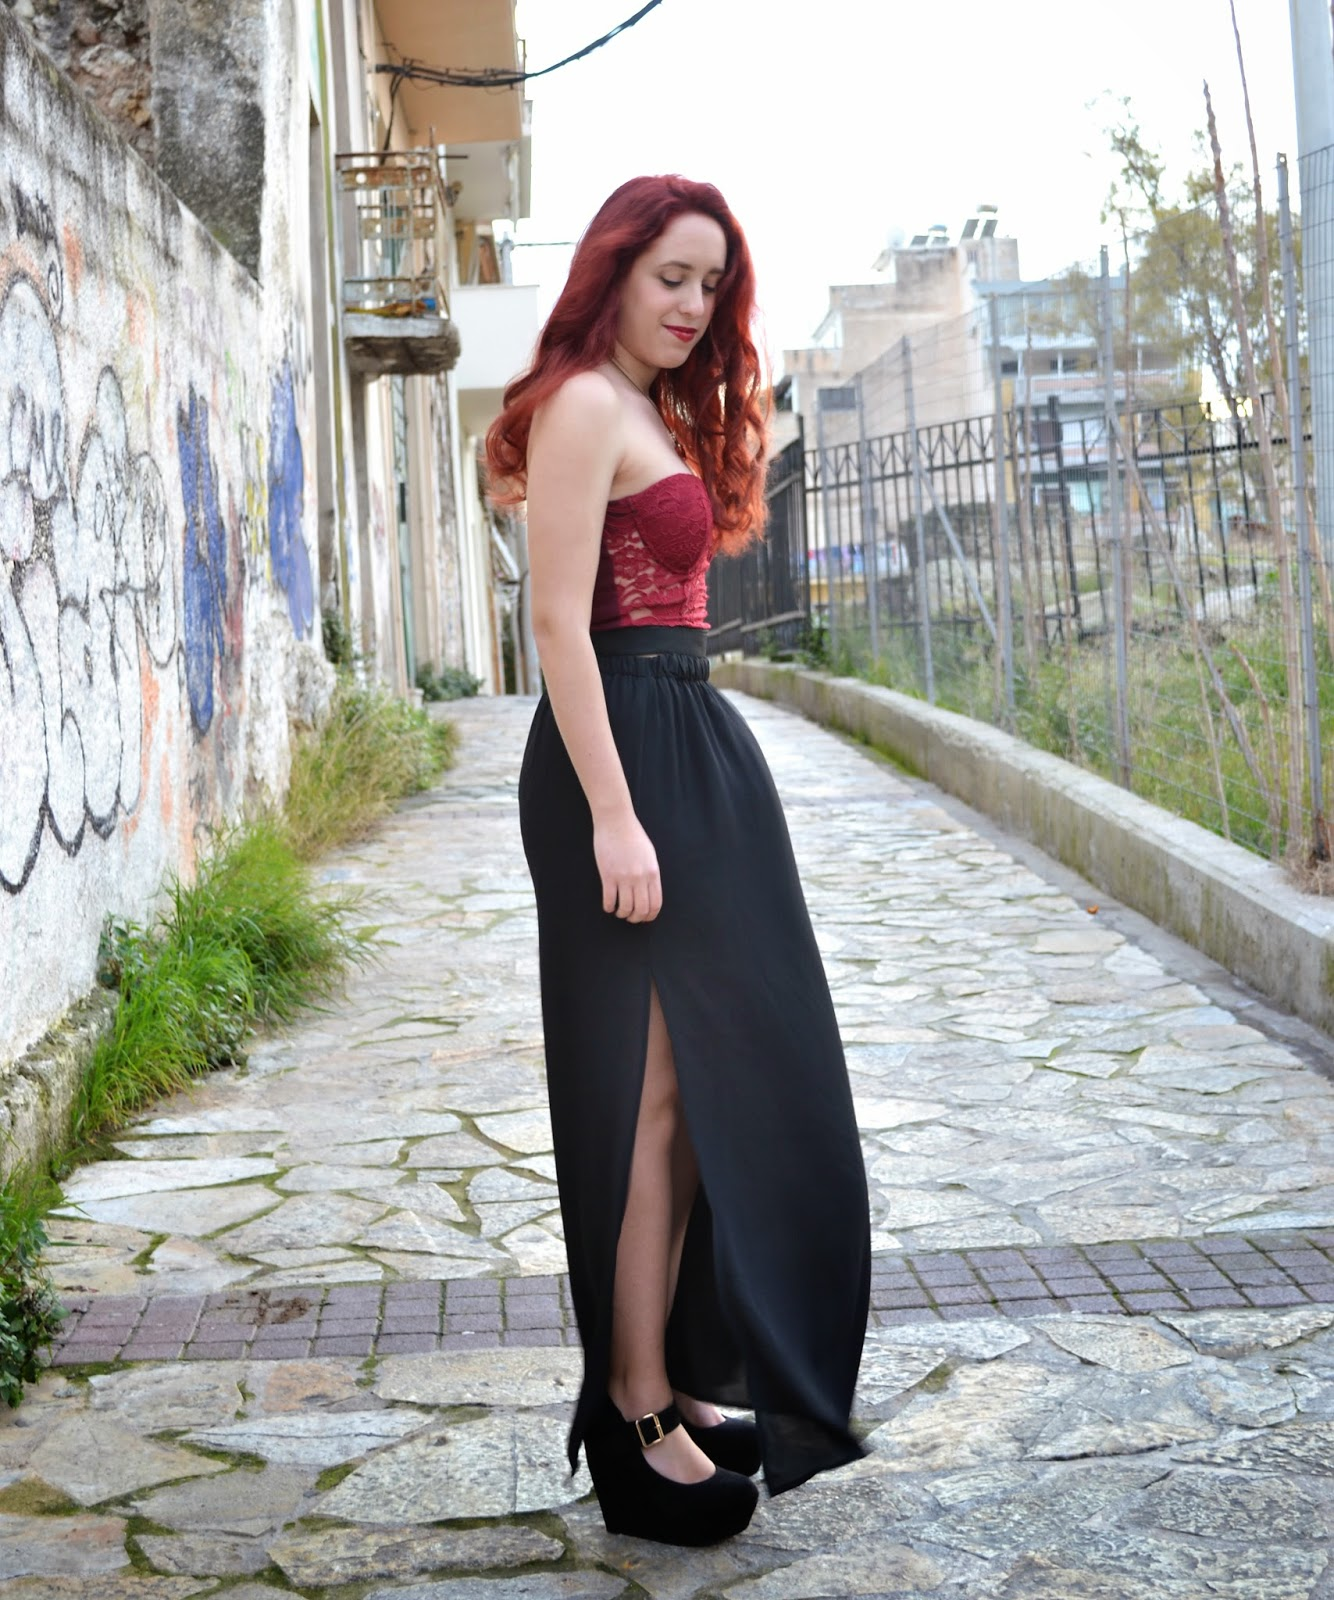 Anna ,Keni,redhead, spotlights on the redhead,fashion,model,blogger, BSB, migato, clothes, outfit, valentine's day,night,